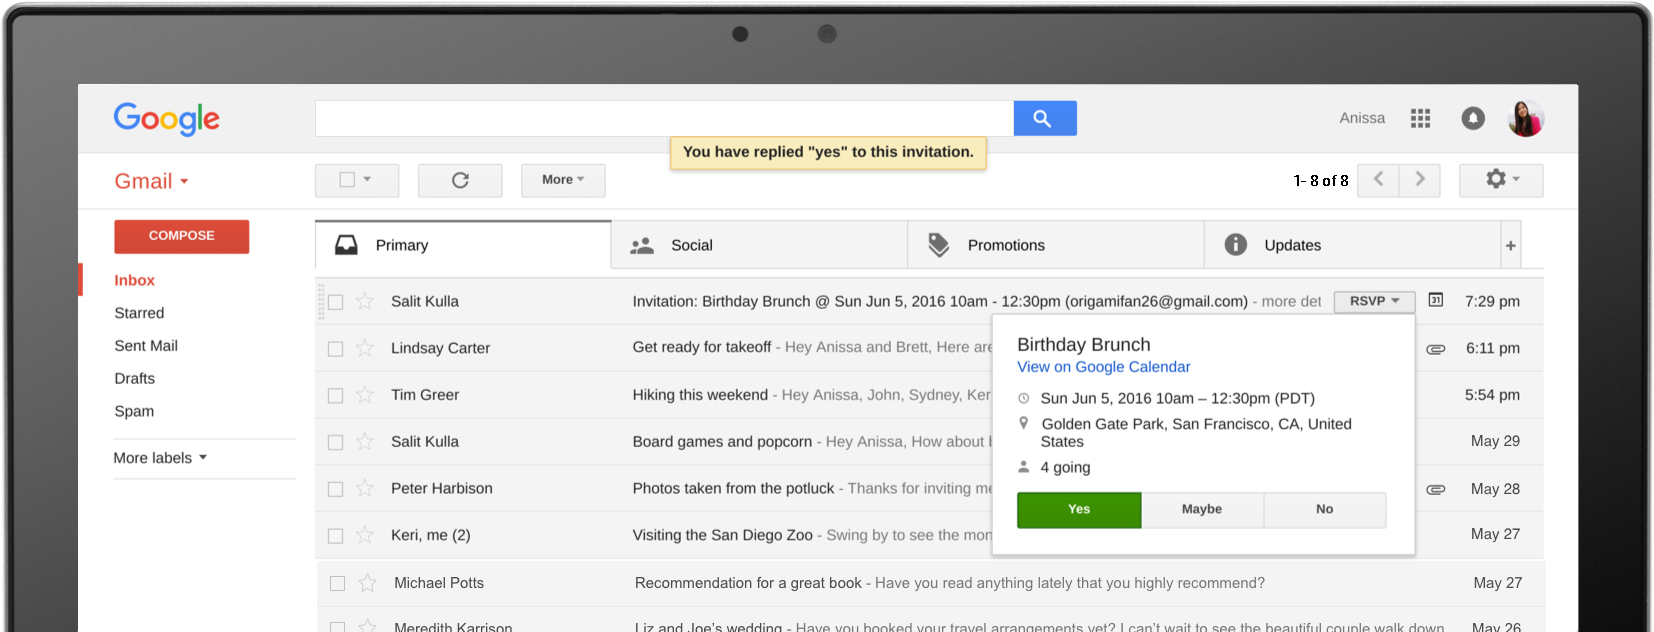 RSVP to event invites, track packages, review products, and more, without opening any emails